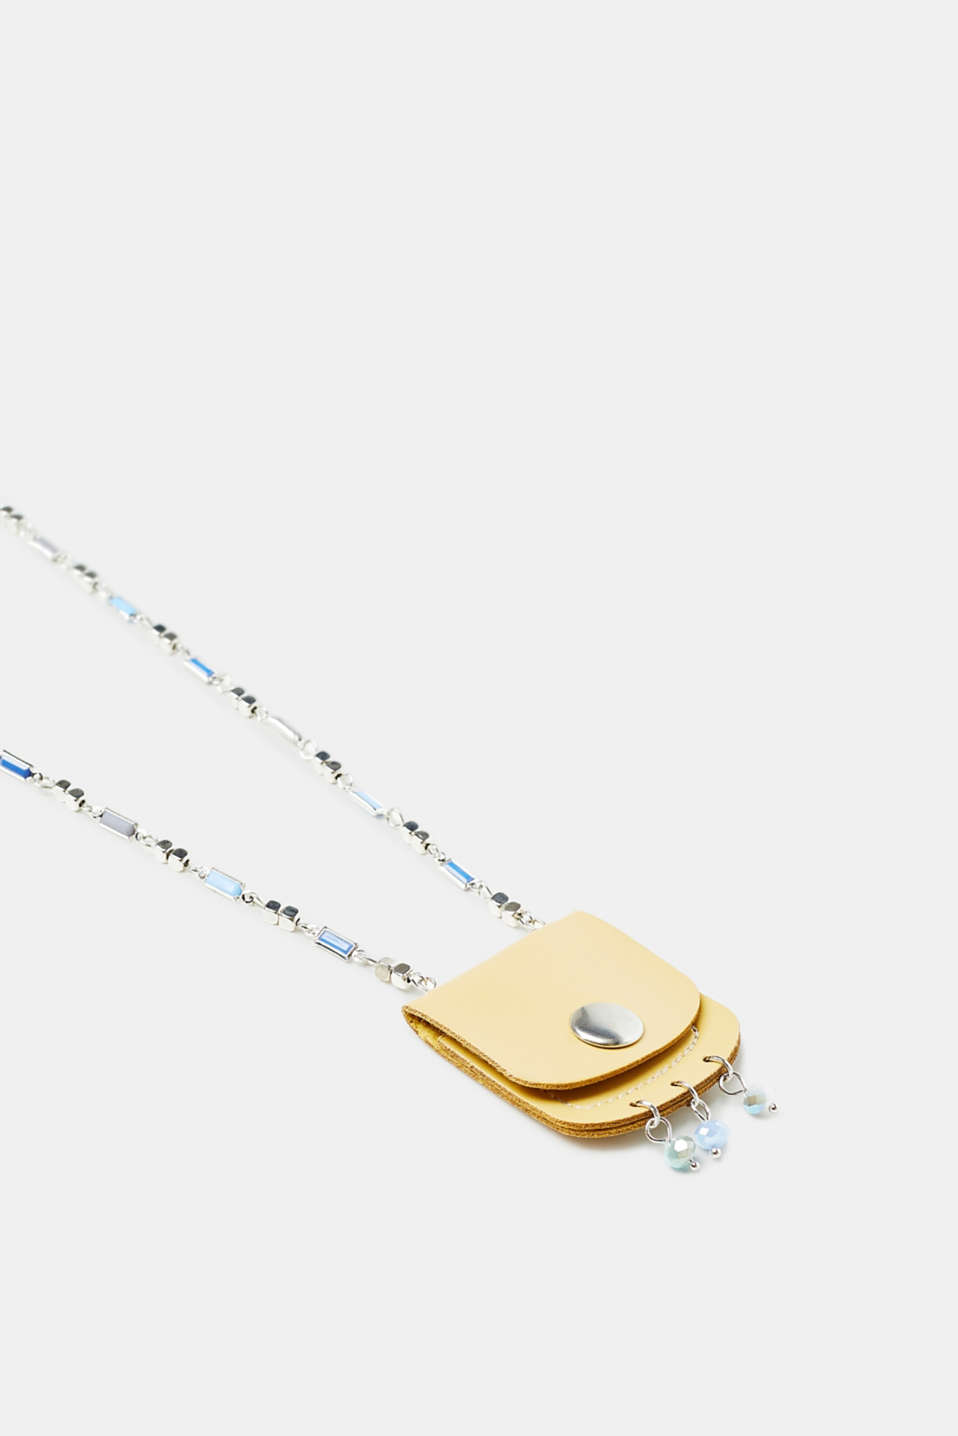 Collier long à petit sac en similicuir